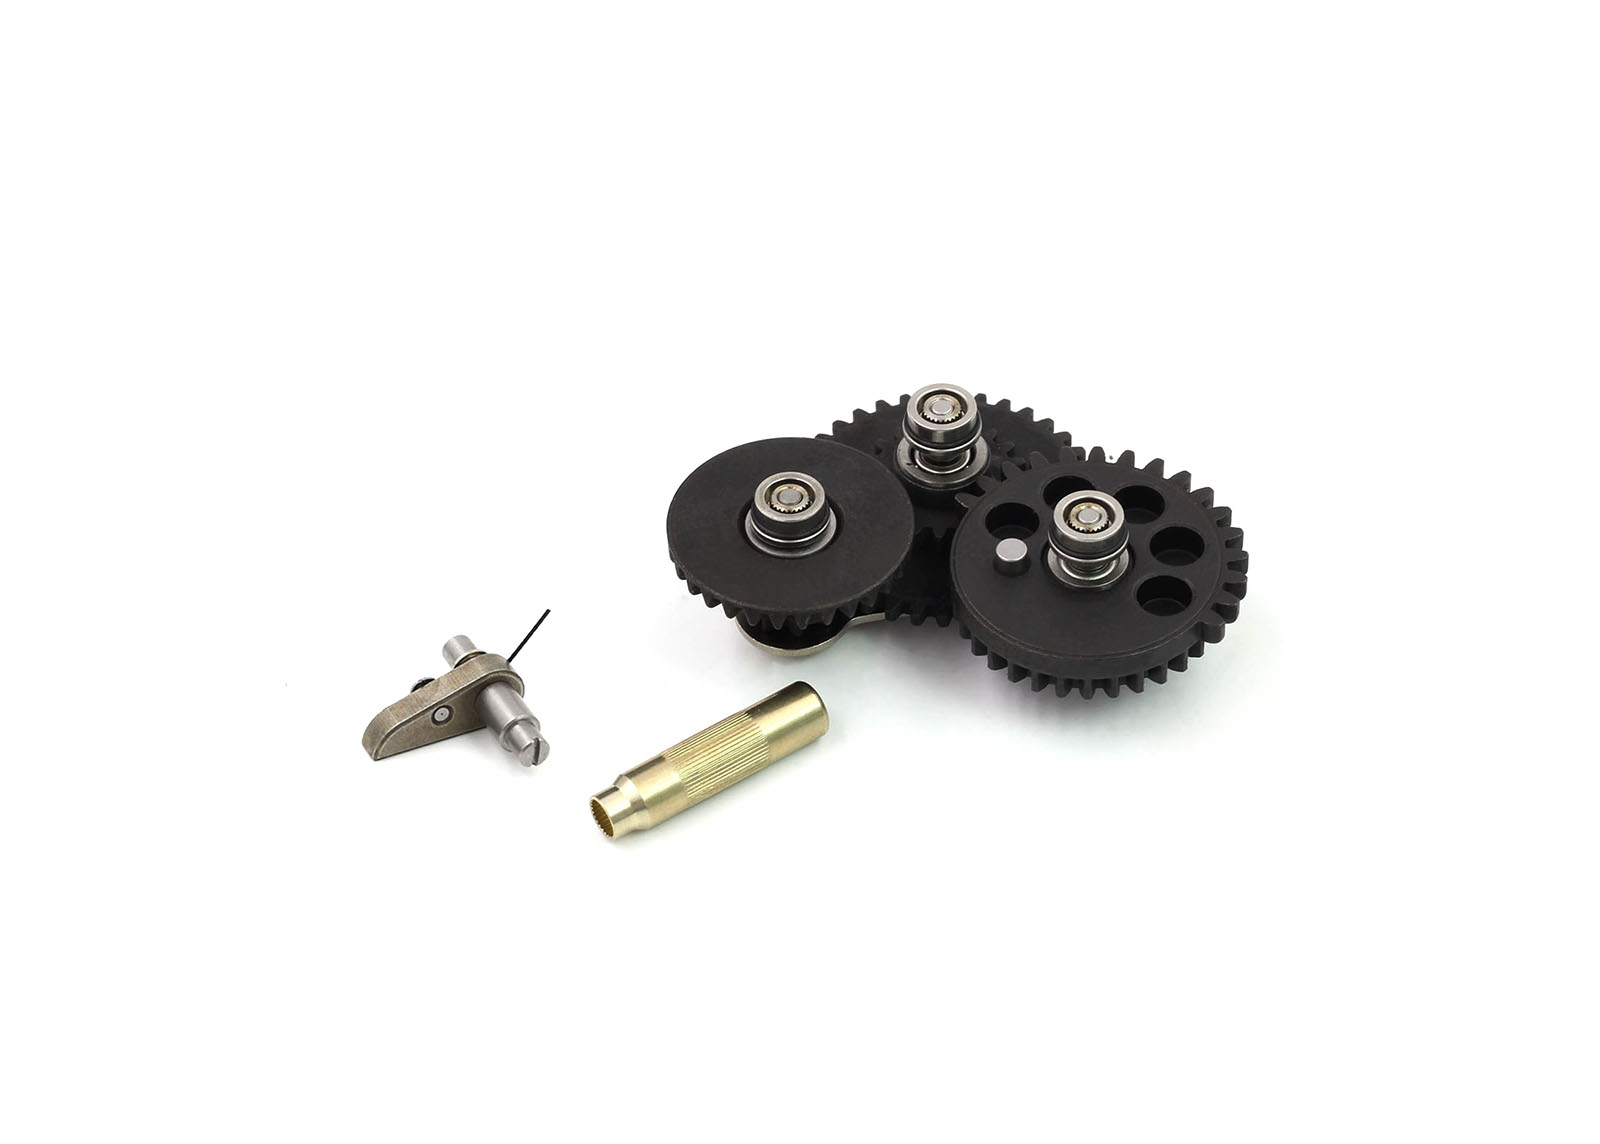 Modular Gear Set - SMOOTH 7mm Ver.2/Ver.3 (Speed 16.32:1+Gear Key) - Modify Airsoft parts